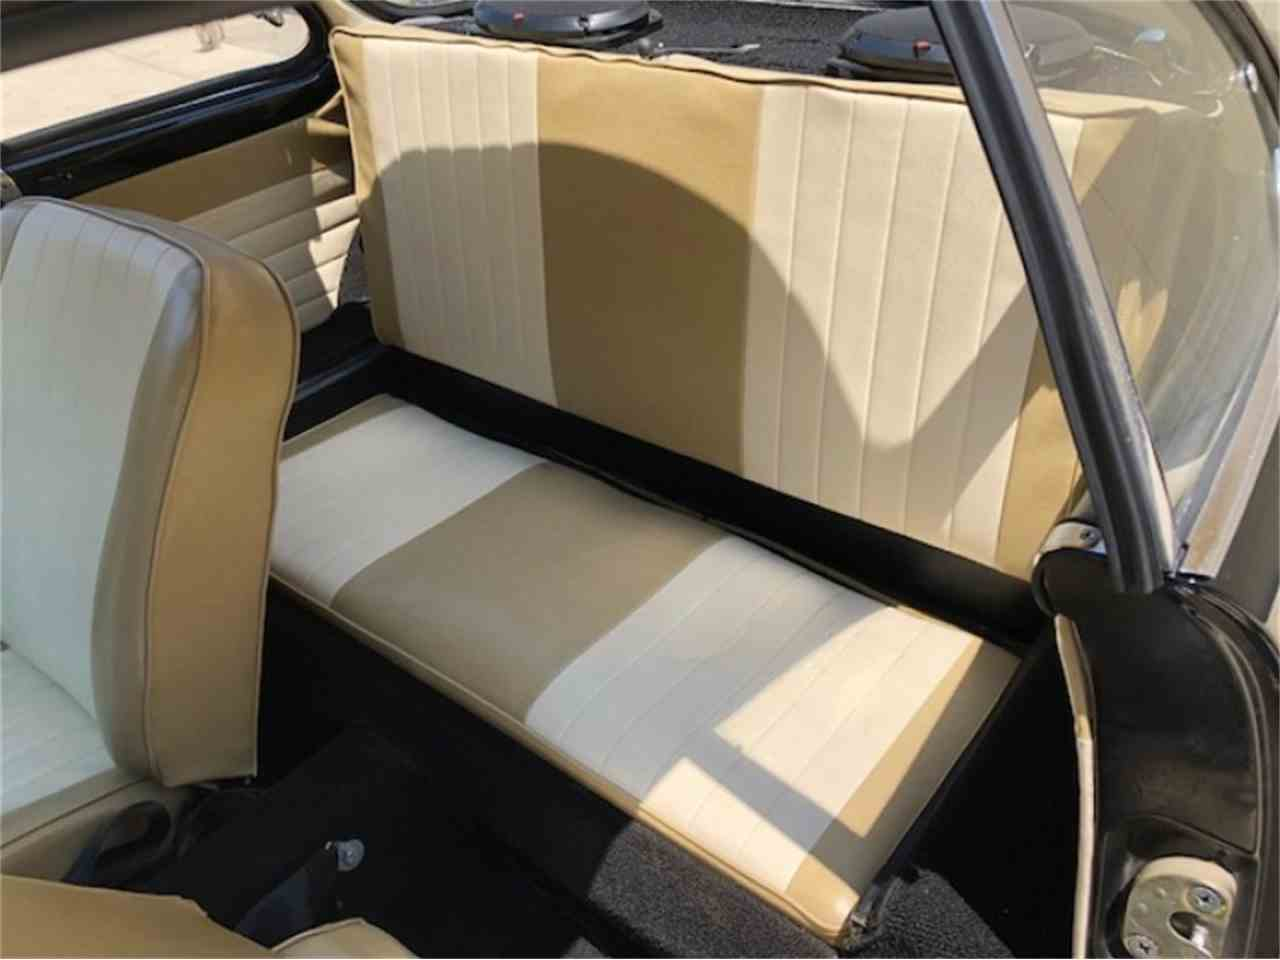 Large Picture of 1968 Volkswagen Karmann Ghia located in Reno Nevada Auction Vehicle - NL61